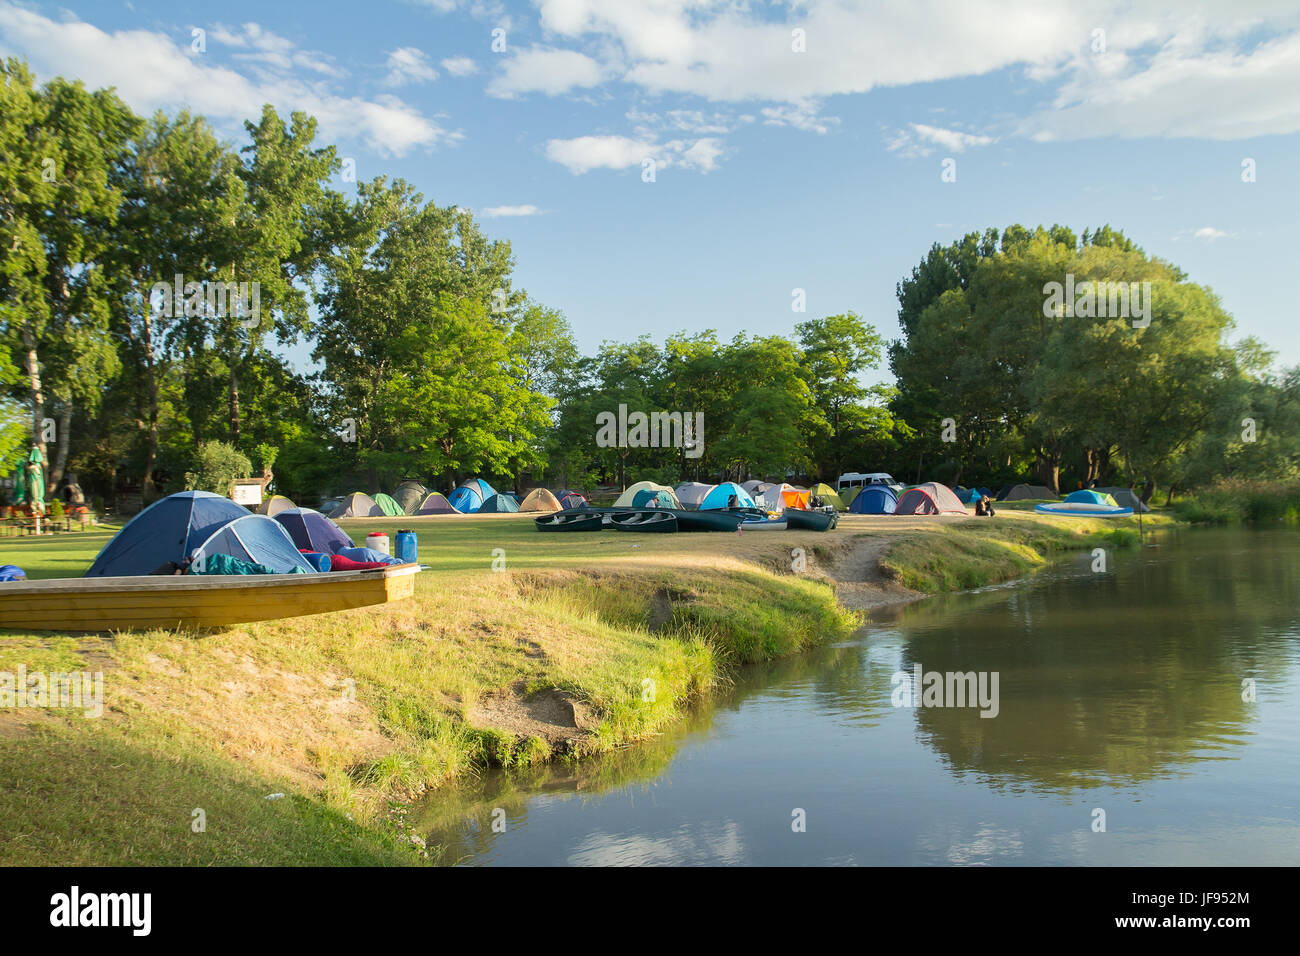 camping area with tents near river - Stock Image